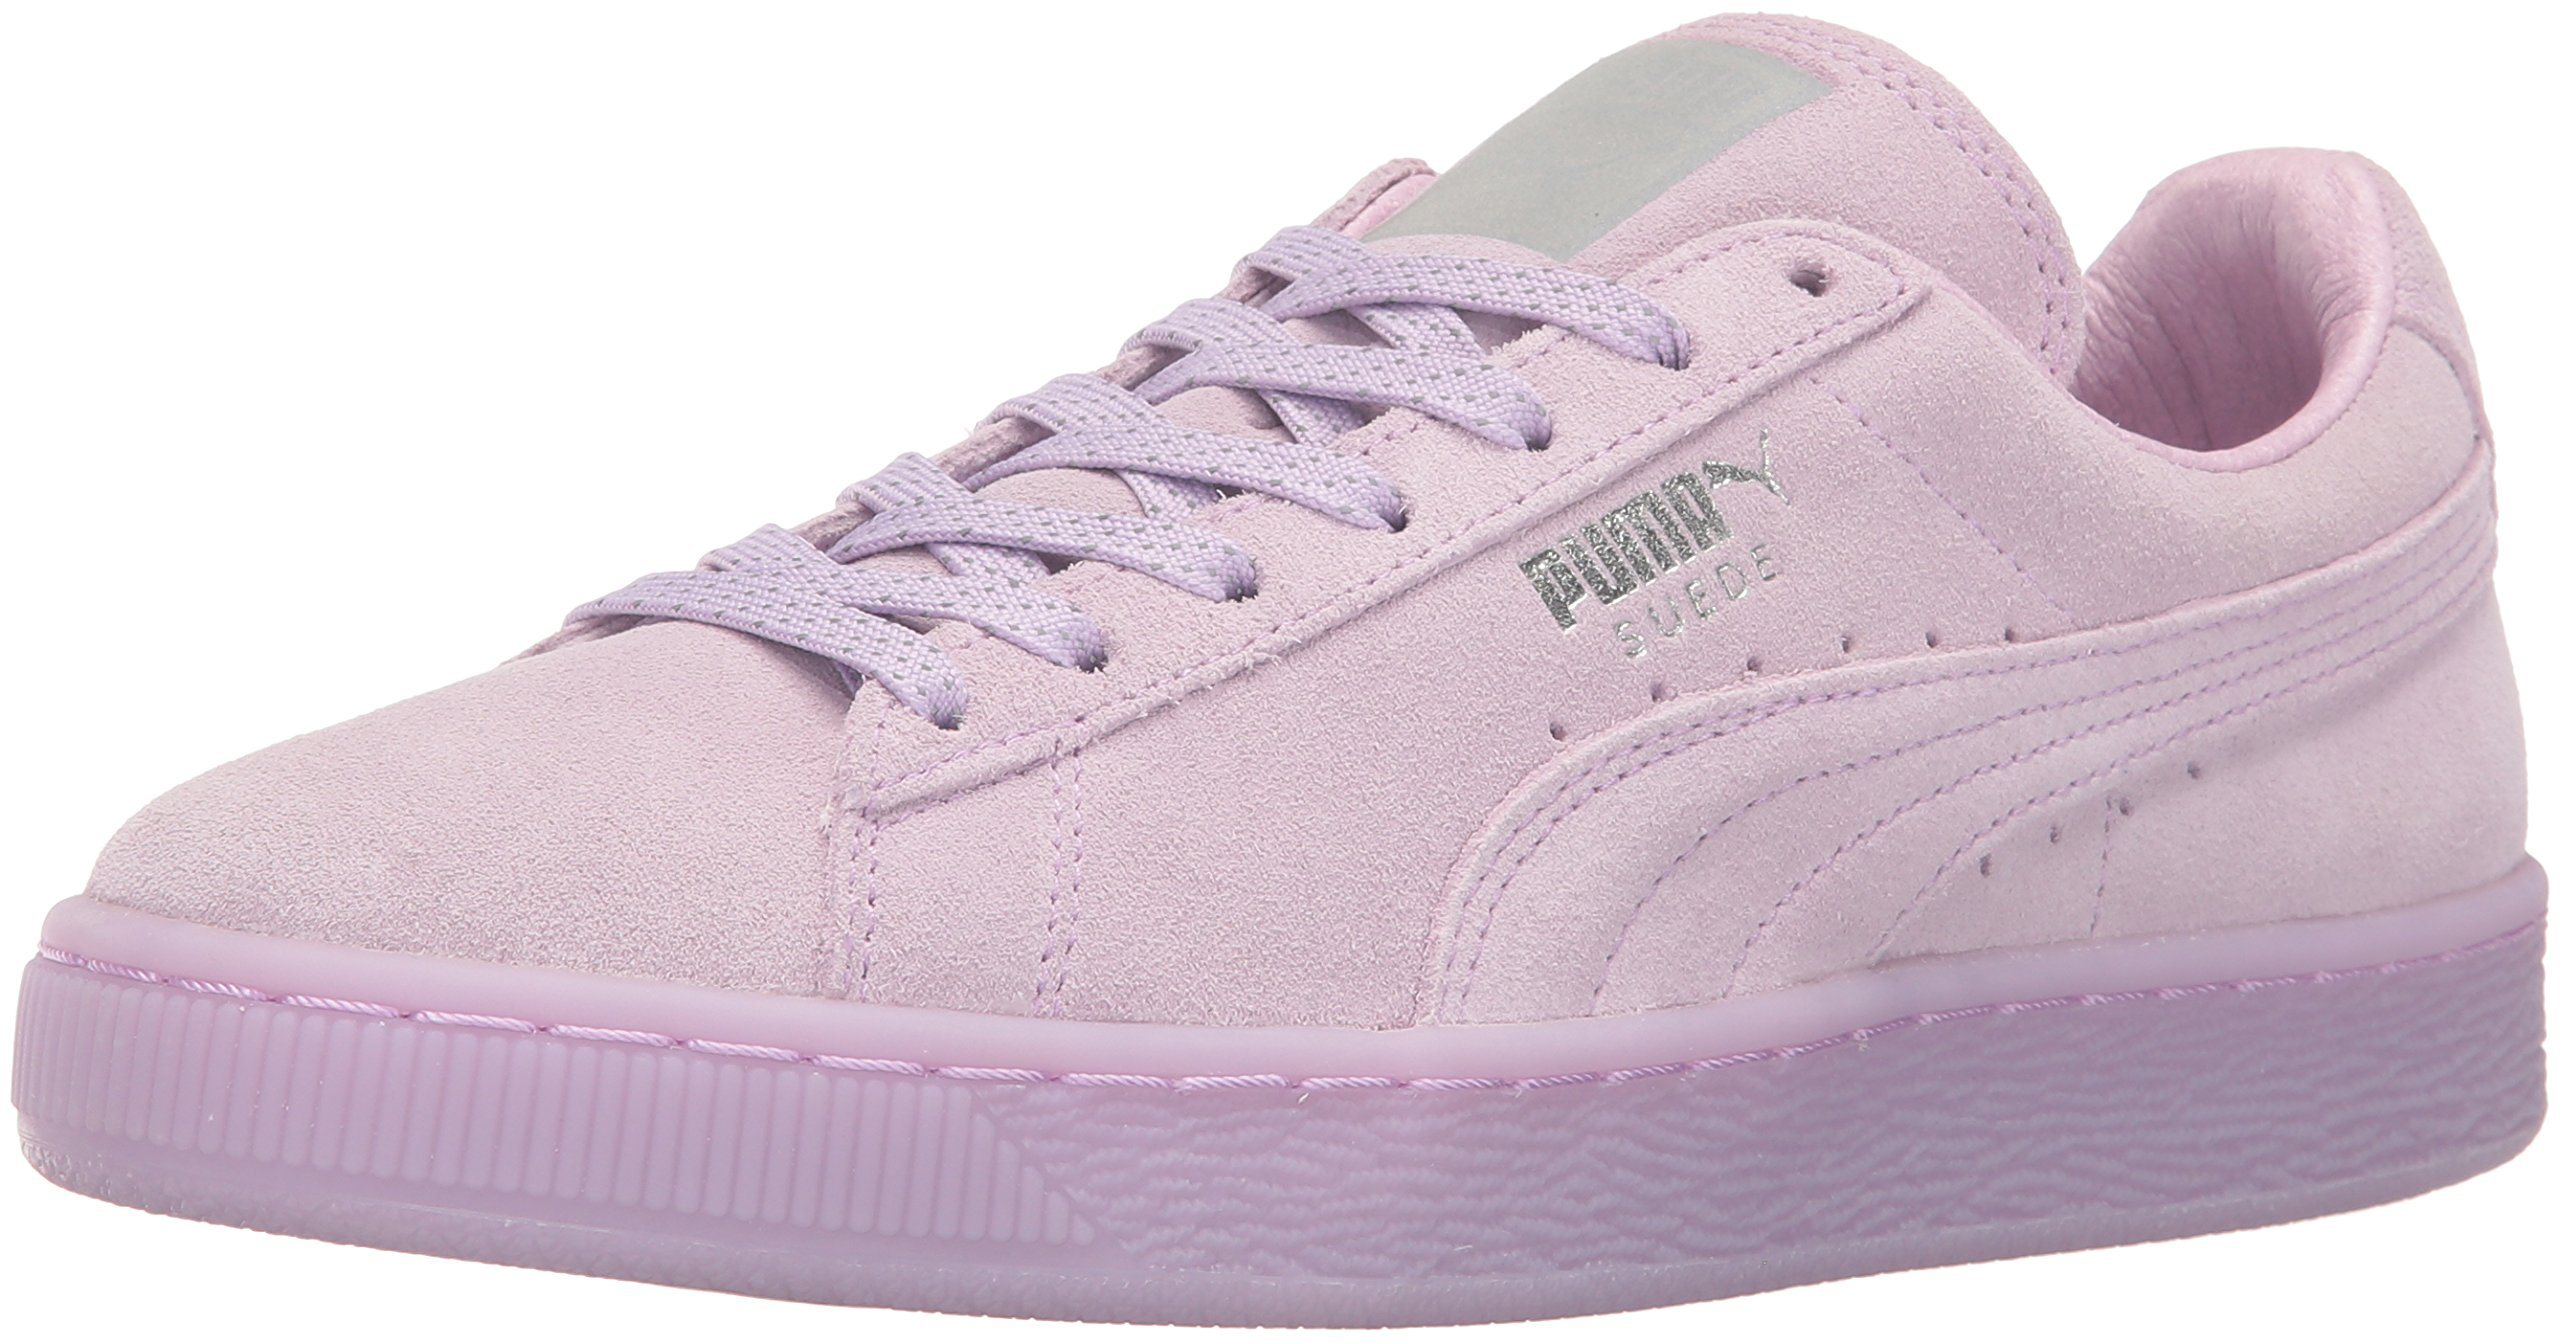 clearance reliable sale footlocker pictures PUMA Women's Classic Mono Ref Ic... outlet affordable cheap price wholesale RFgWcL